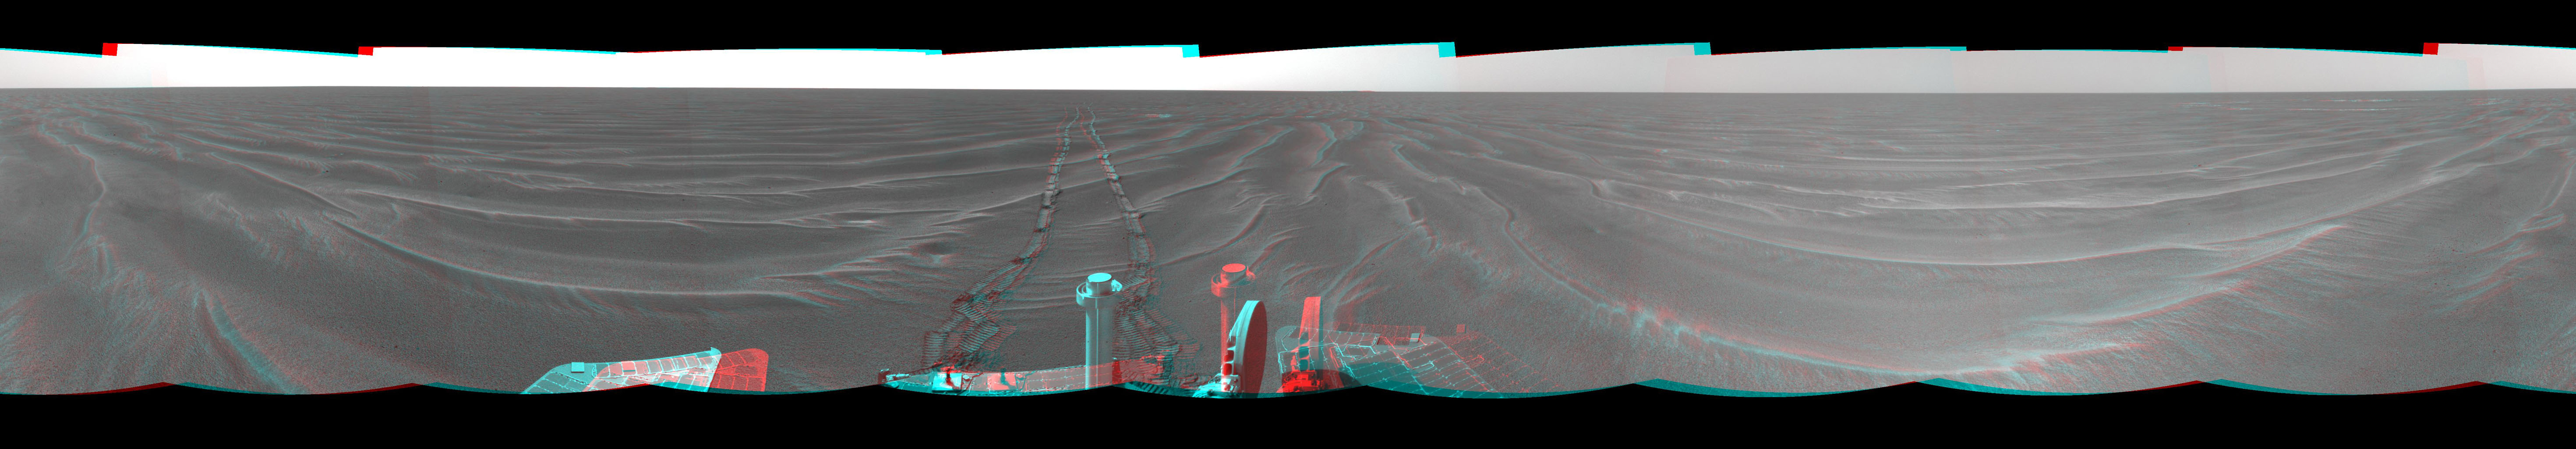 On Mar. 7, 2005, NASA's Mars Exploration Rover Opportunity drove 35 meters (115 feet) toward 'Vostok Crater' that sol before taking images. 3-D glasses are necessary to view this image.